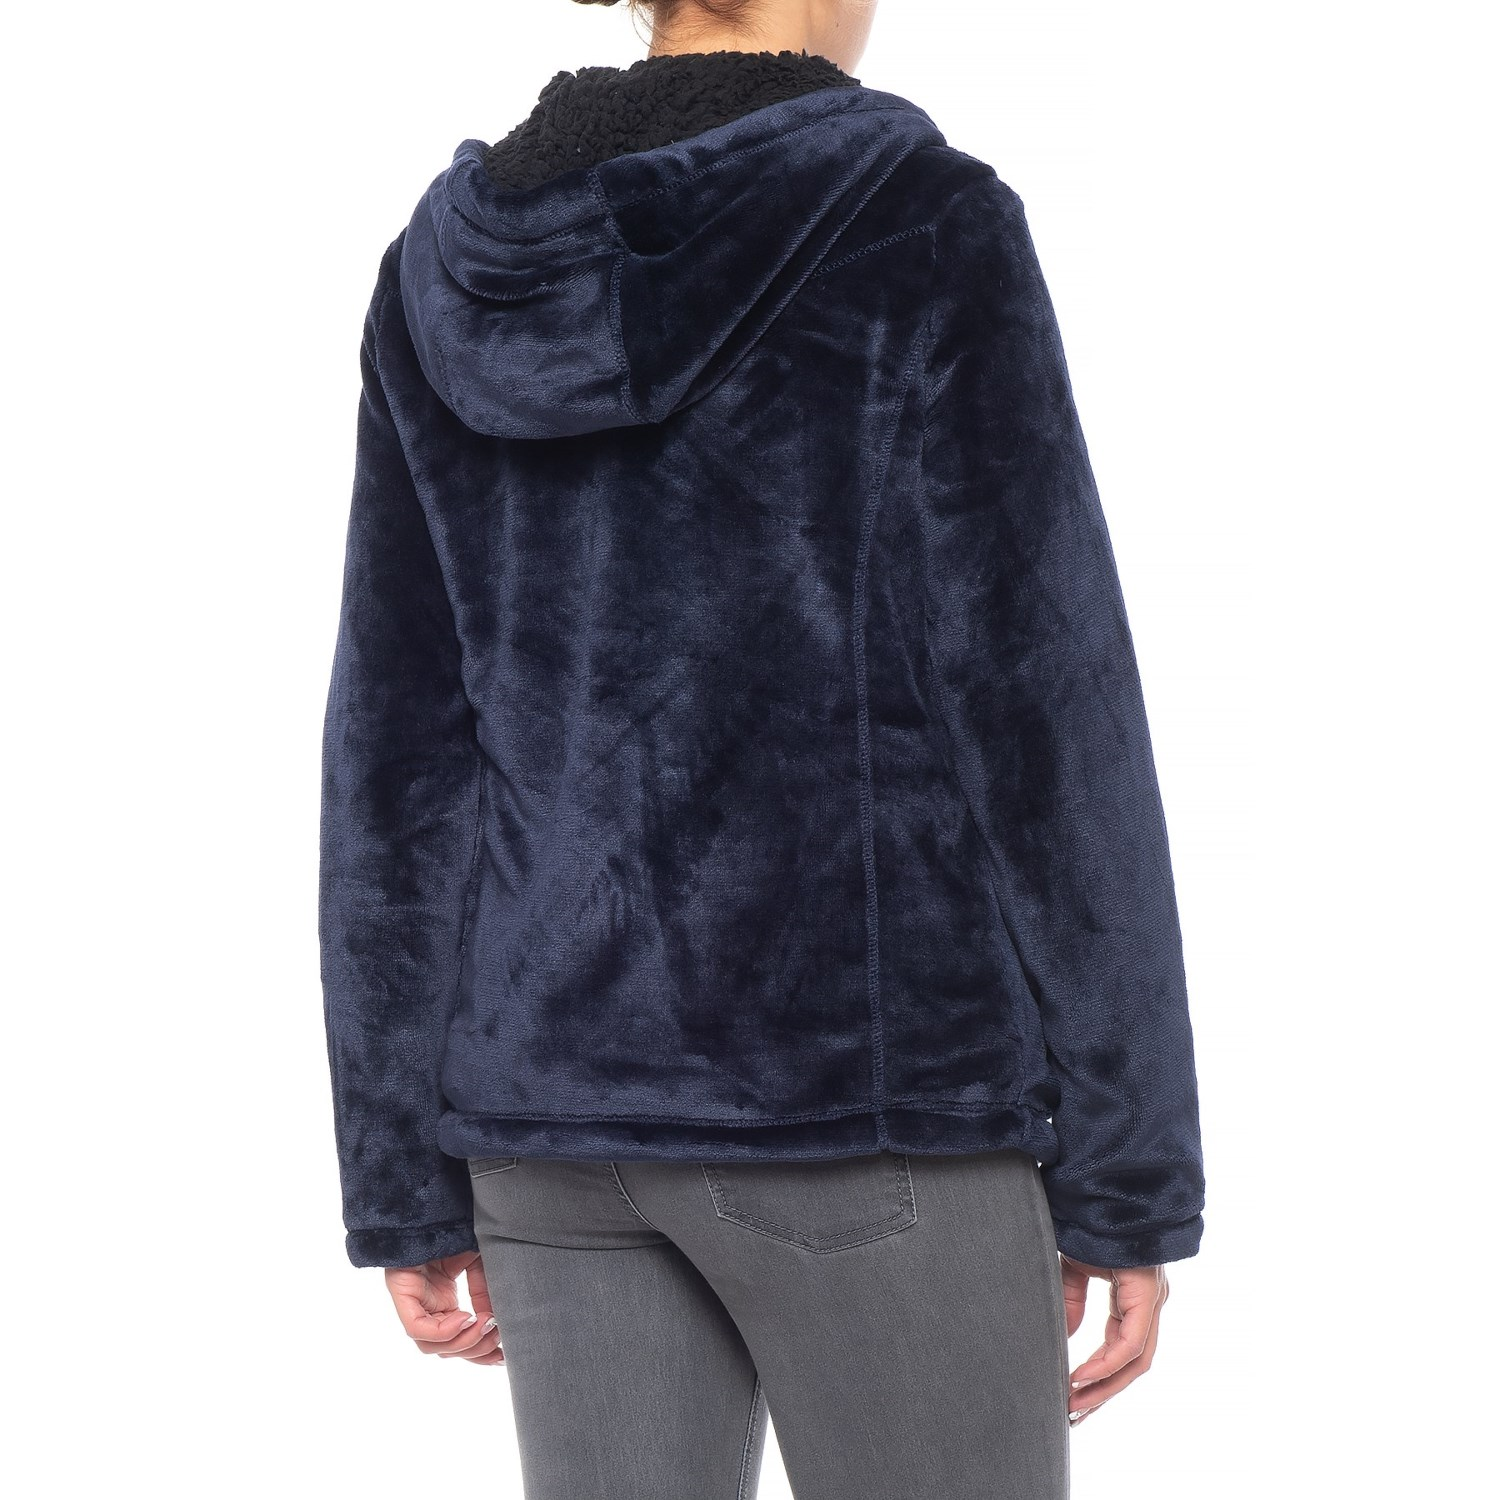 17cba26a0 weatherproof-hooded-cozy-sherpa-jacket-insulated-for-women~a~445tk_2~1500.1.jpg